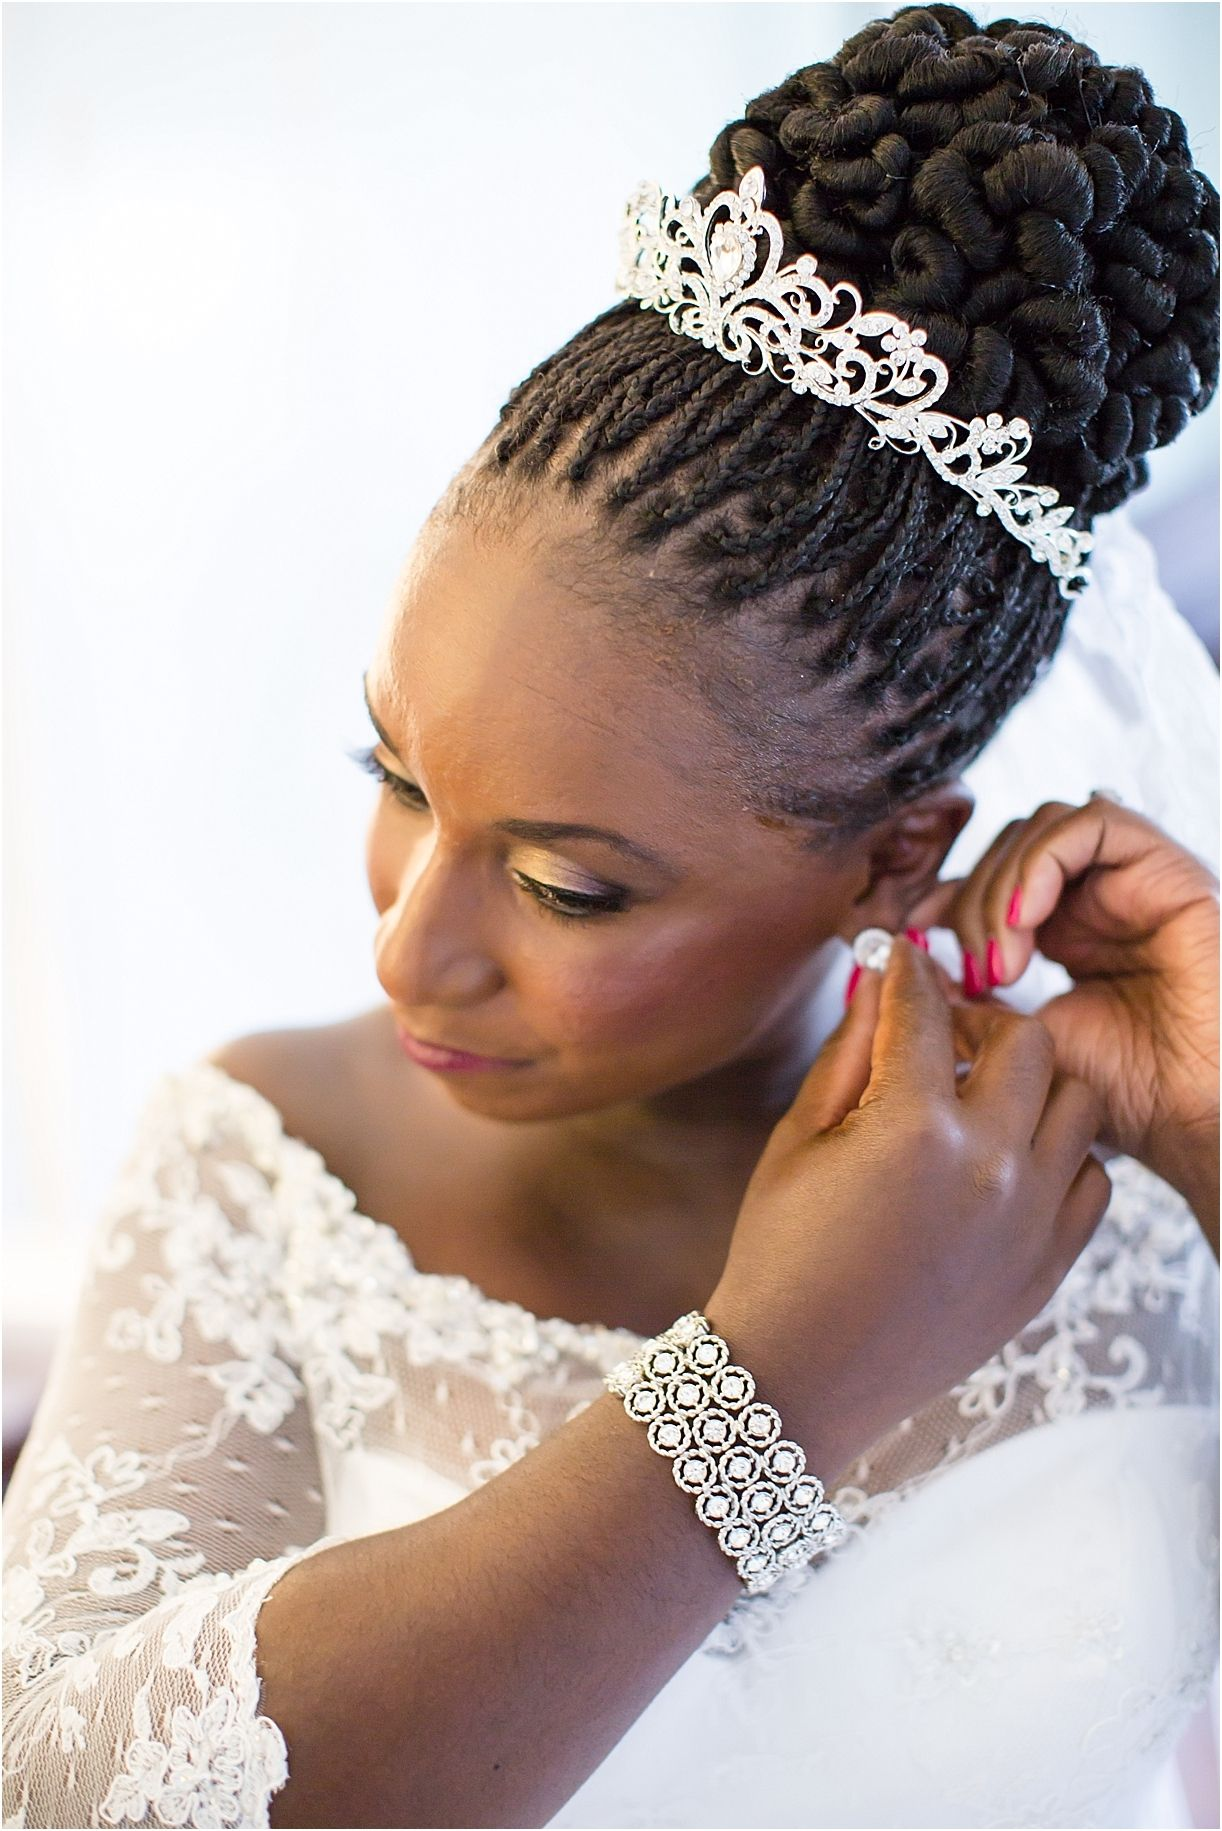 trivium estate lynchburg virginia wedding | virginia, hair makeup